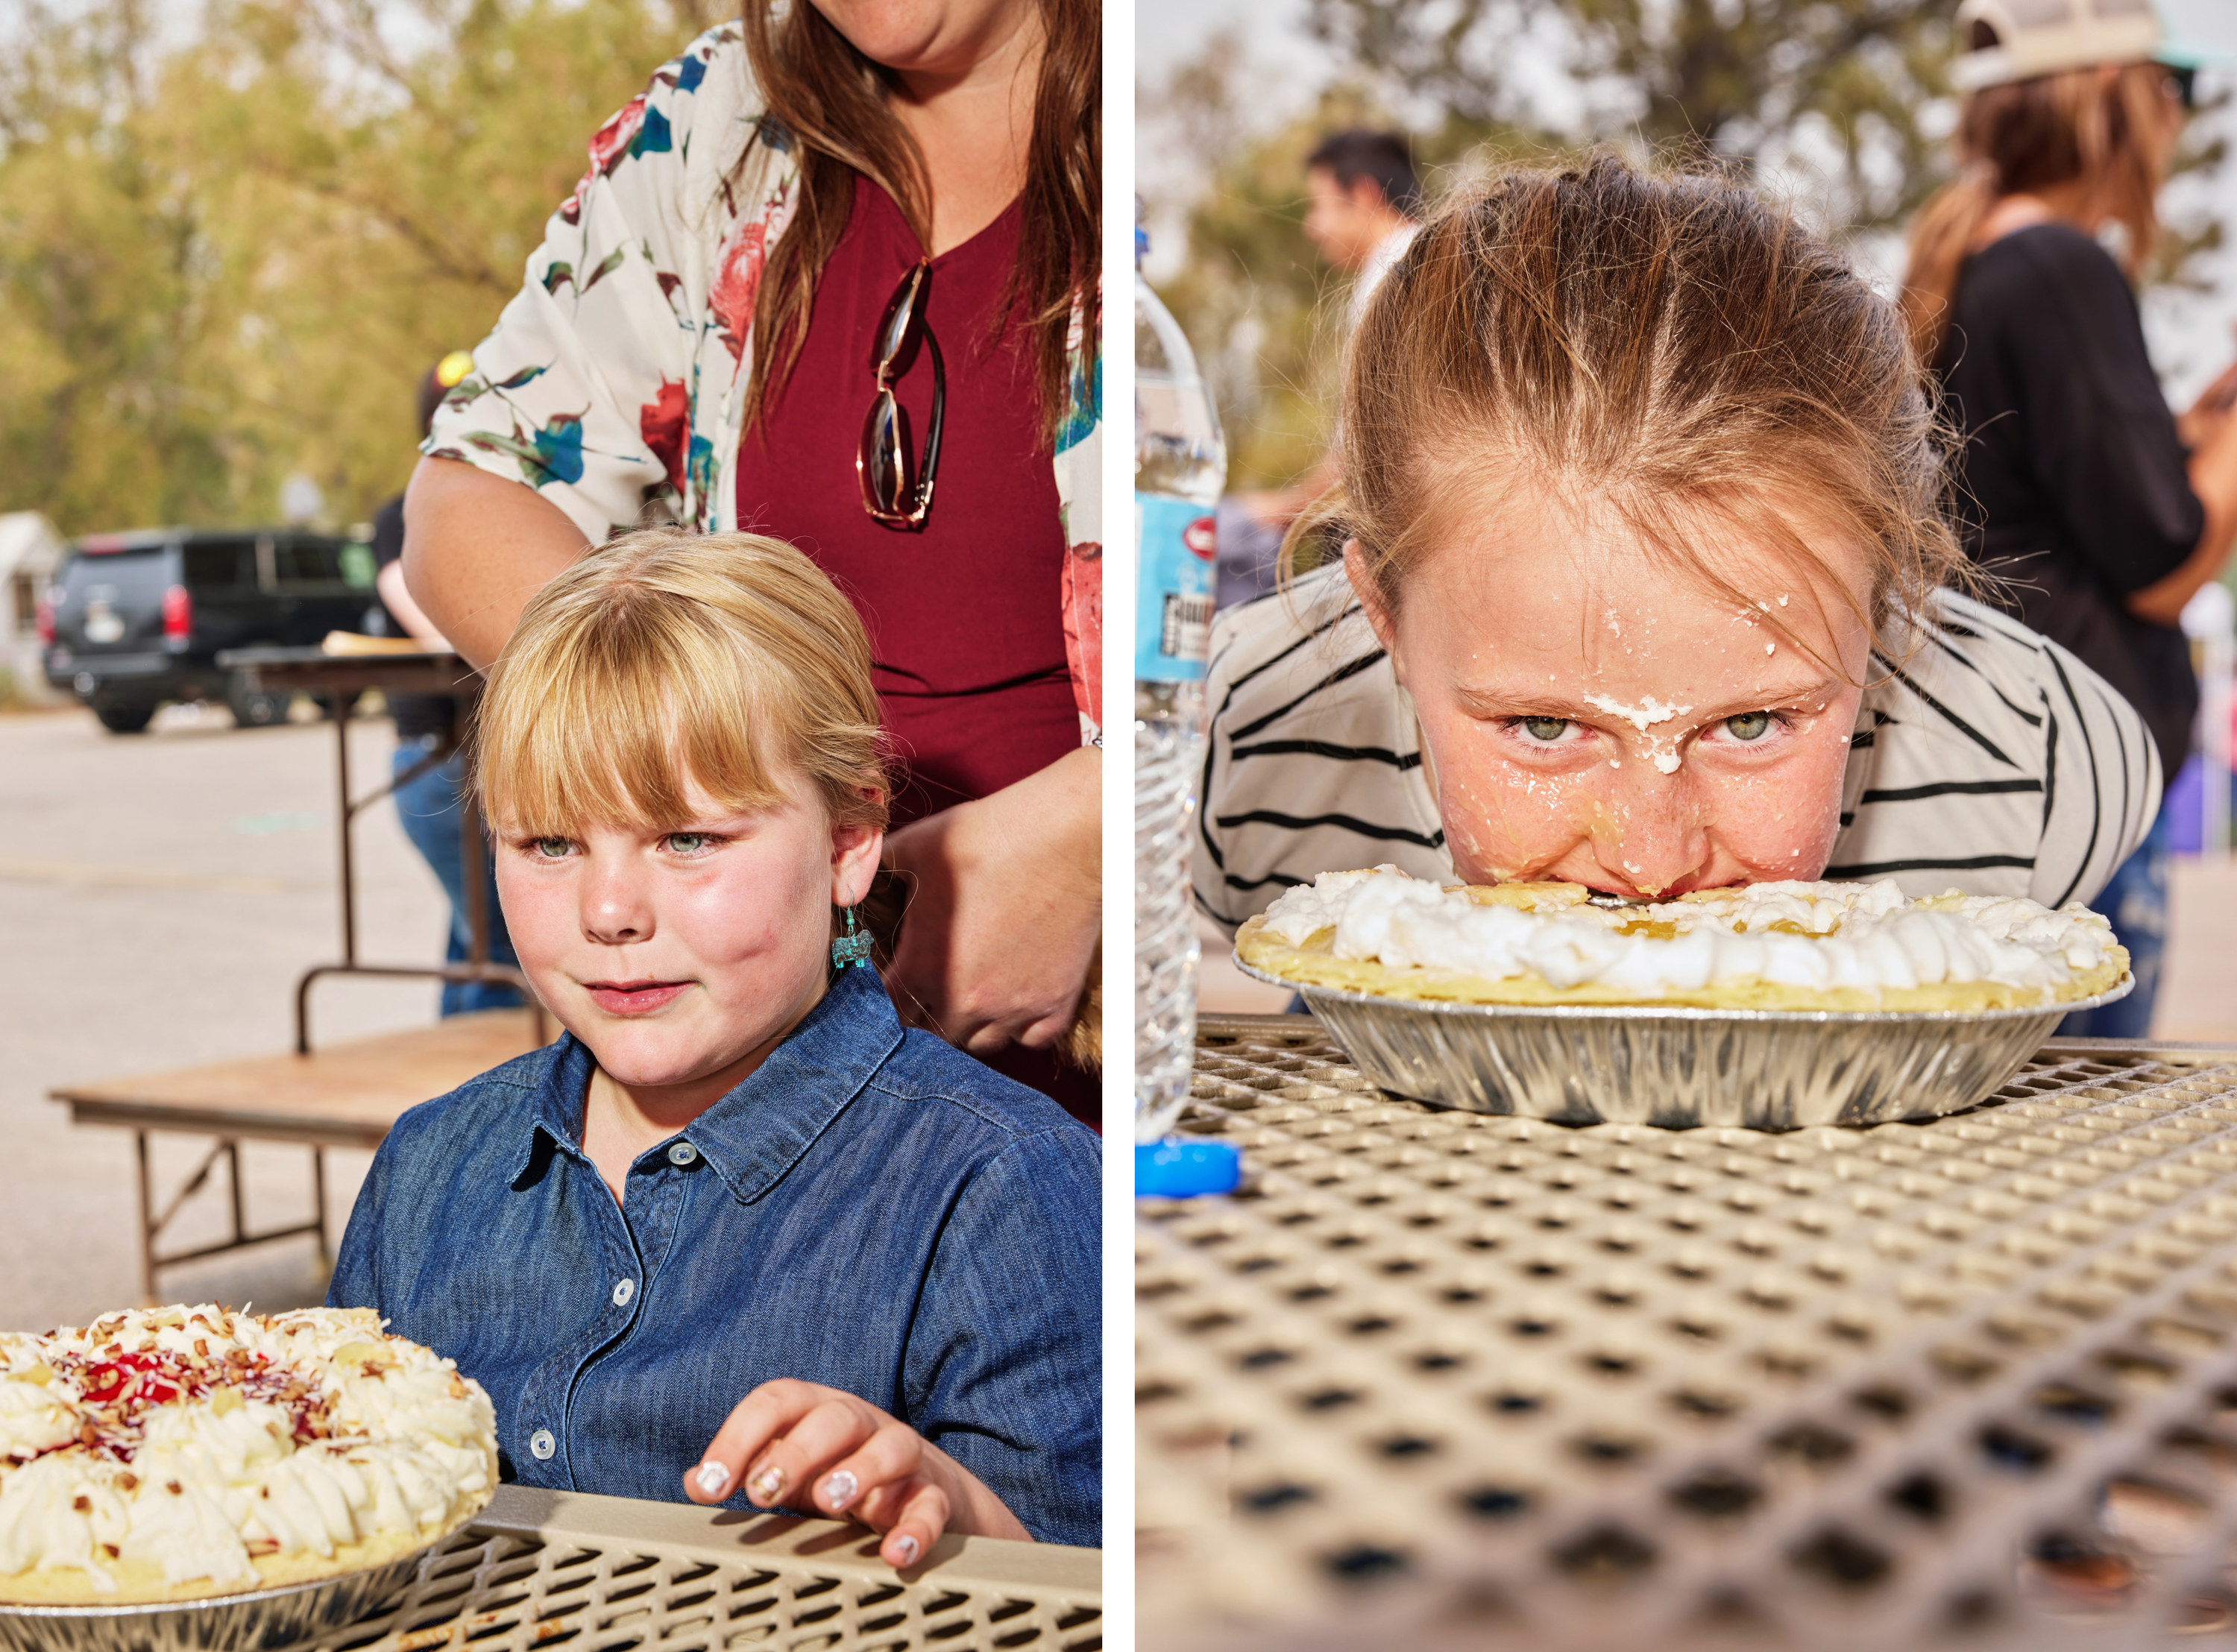 Left, a girl sitting in front of a large pie, right, a girl with her face in a small pie